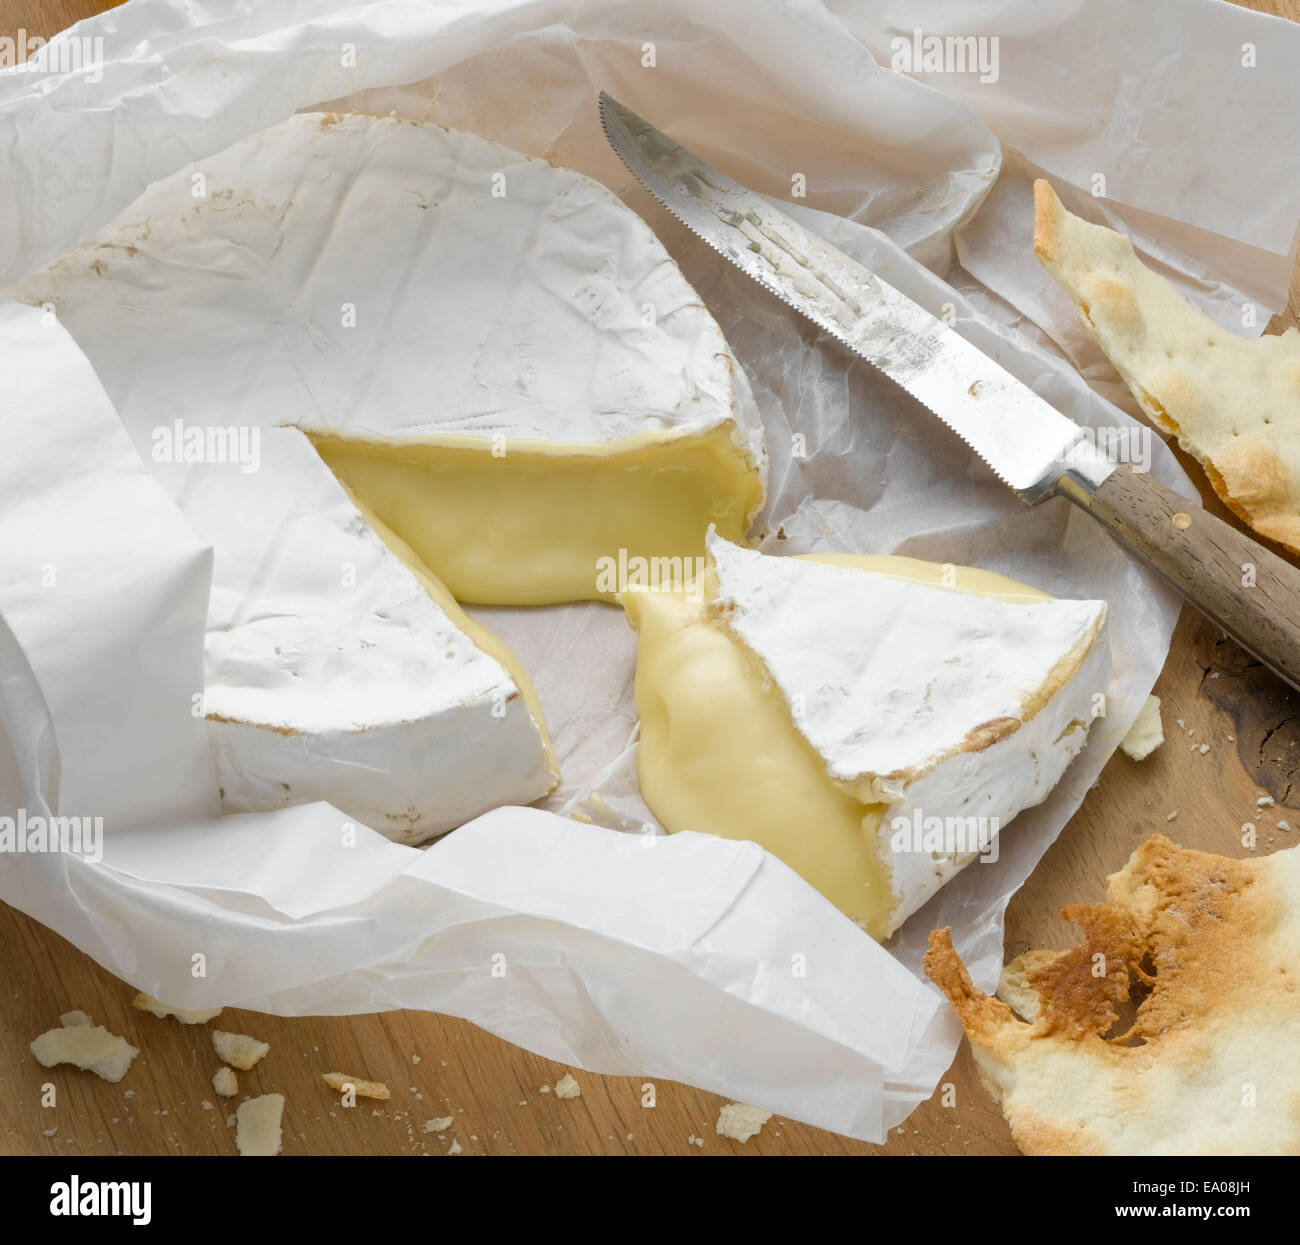 Brie wrapped in paper - Stock Image